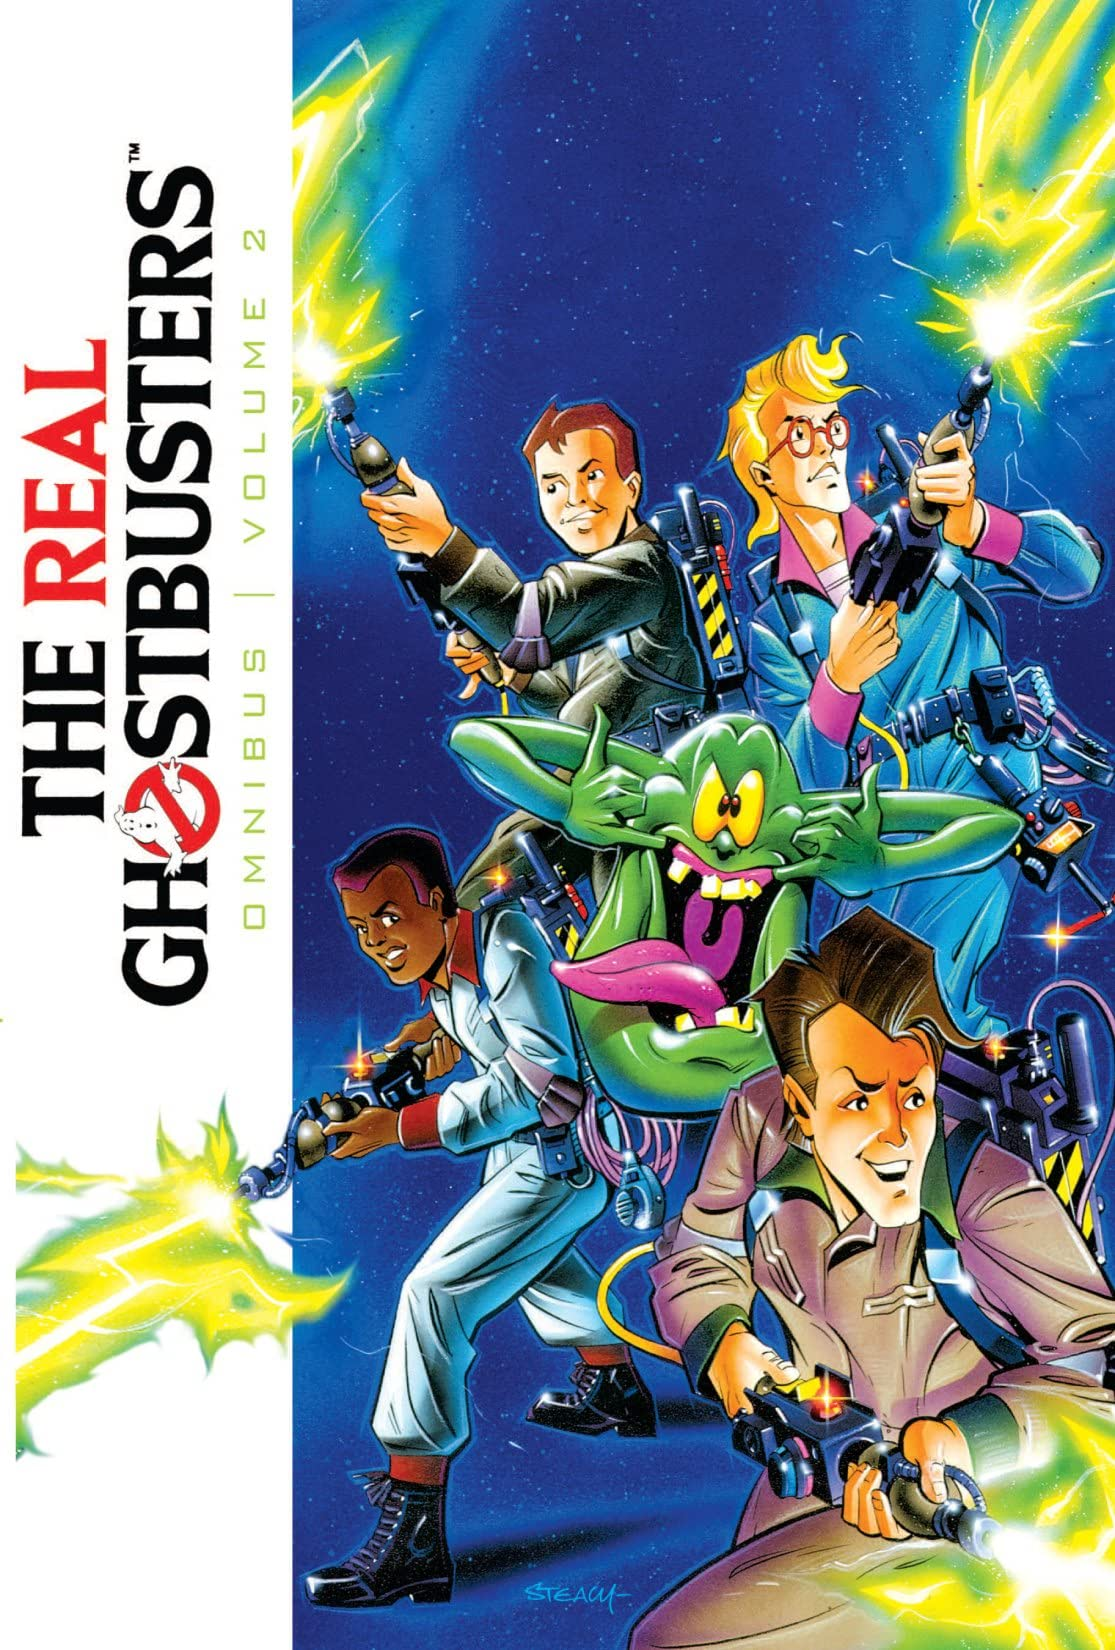 Ghostbusters: The Real Ghostbusters Omnibus Vol. 2